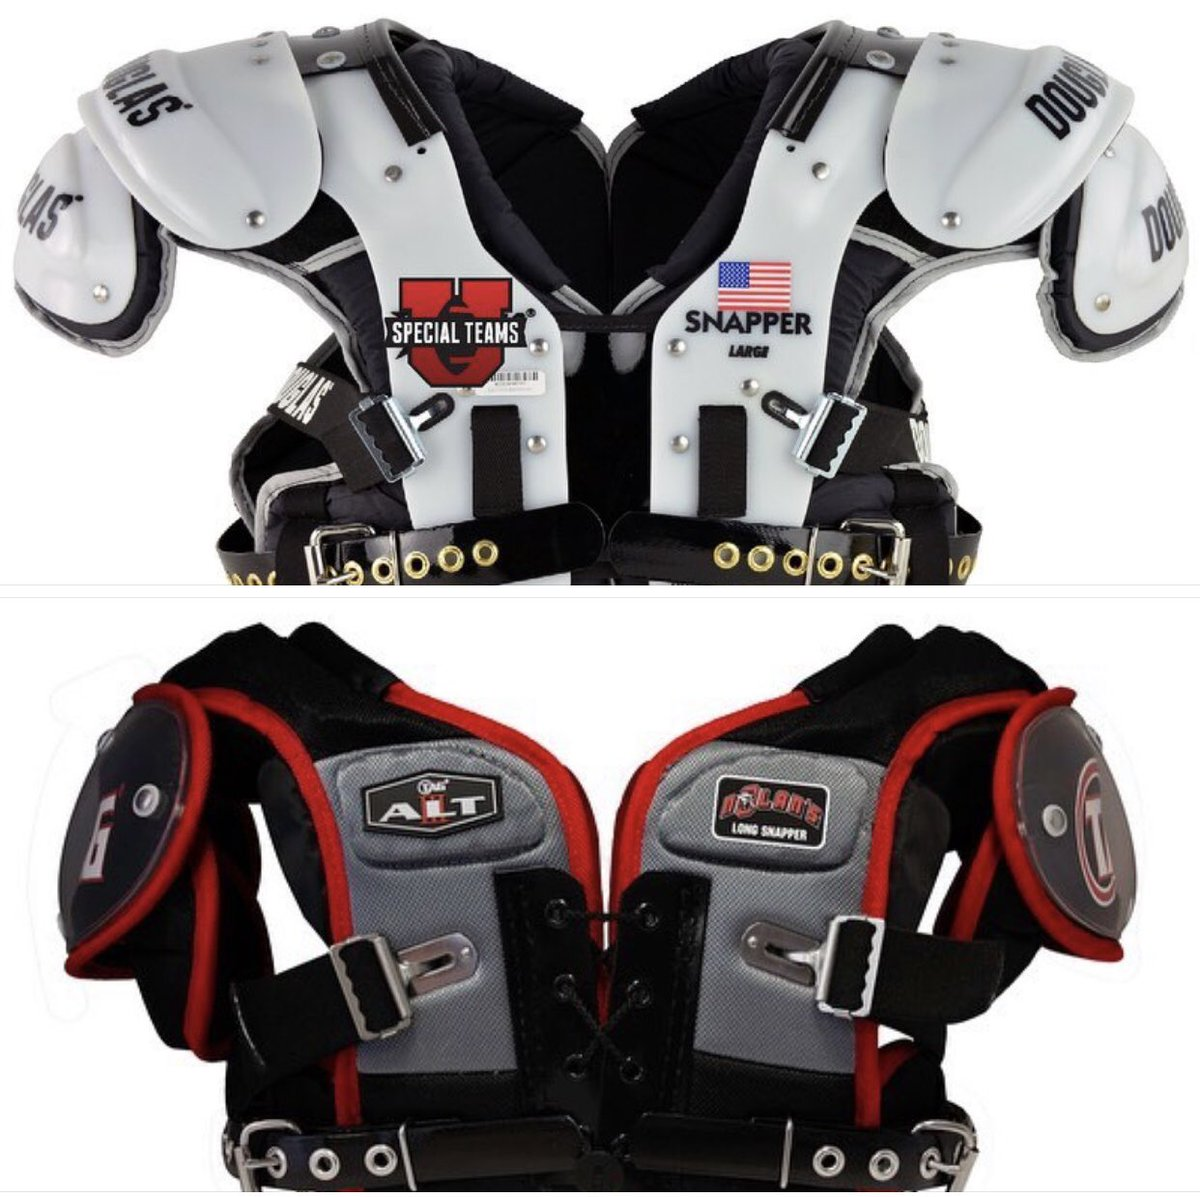 ca3ea0265d7fa ... shoulder pads to help with their range of motion... Don't be afraid of  change... You will never know unless you try  yourself!pic.twitter.com/1VPlL9MWJn